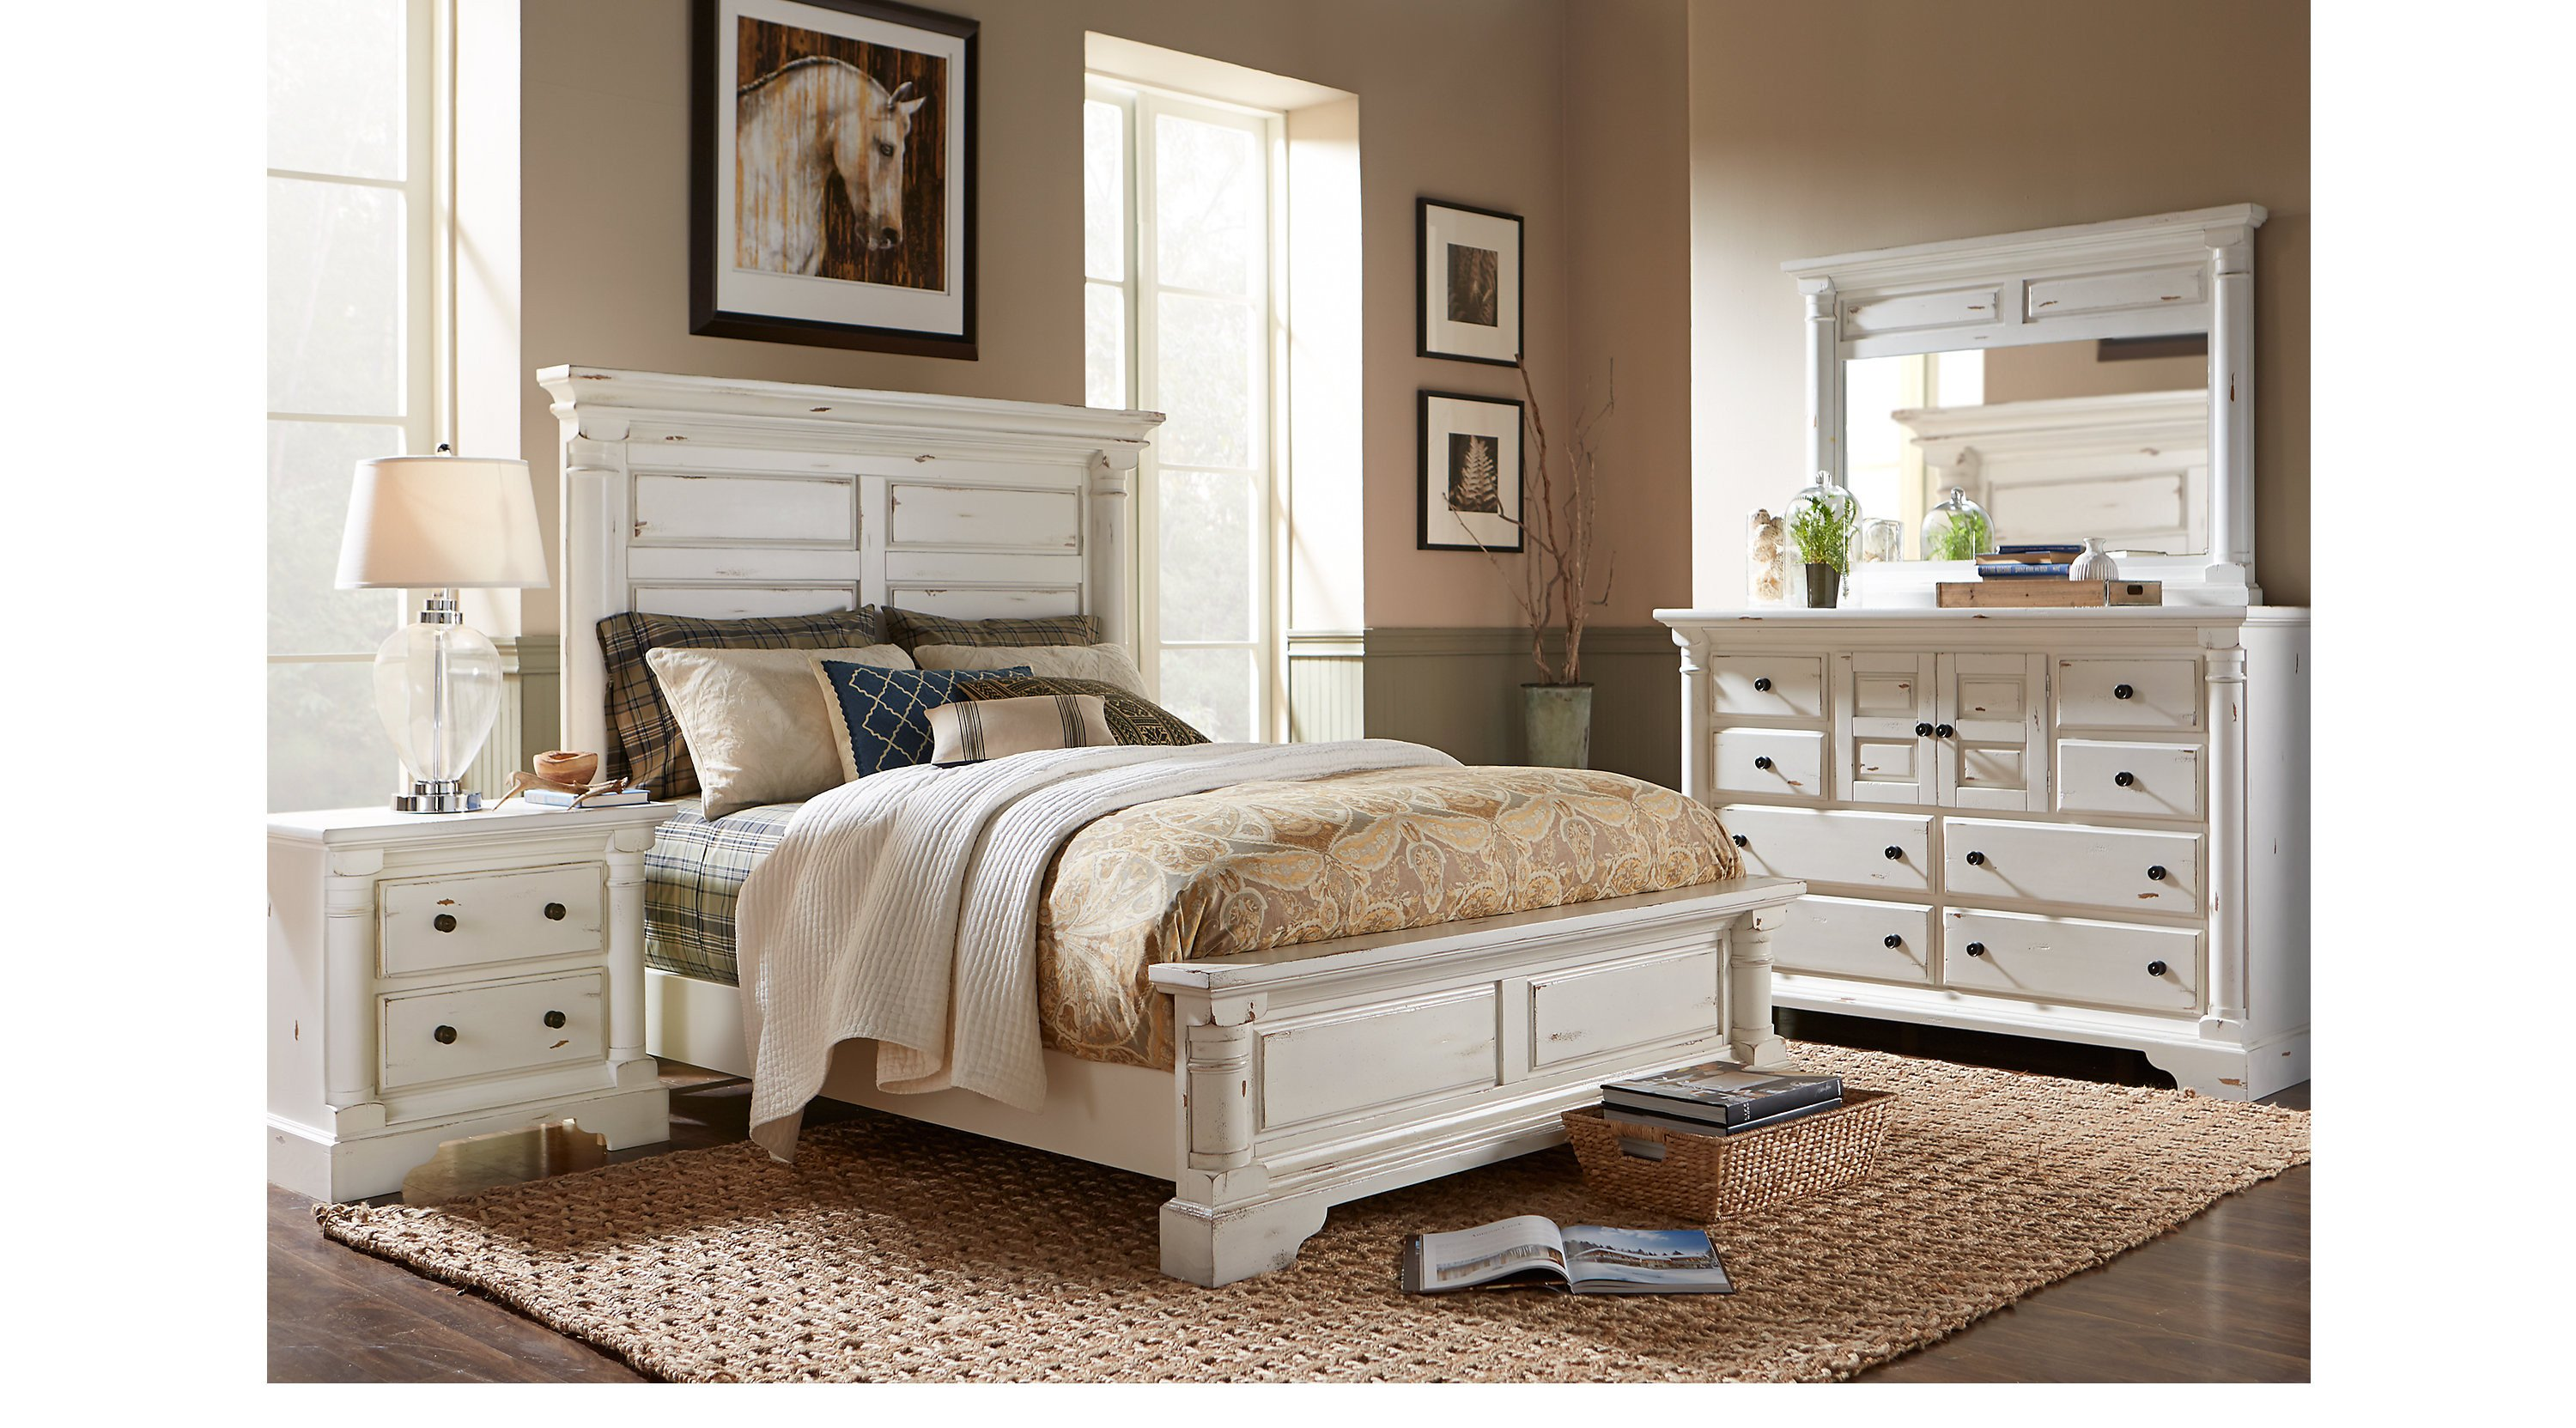 Wall Unit Bedroom Set Beautiful Bestpriceshooversteamvacreplacementp Luxury Bed Back Wall